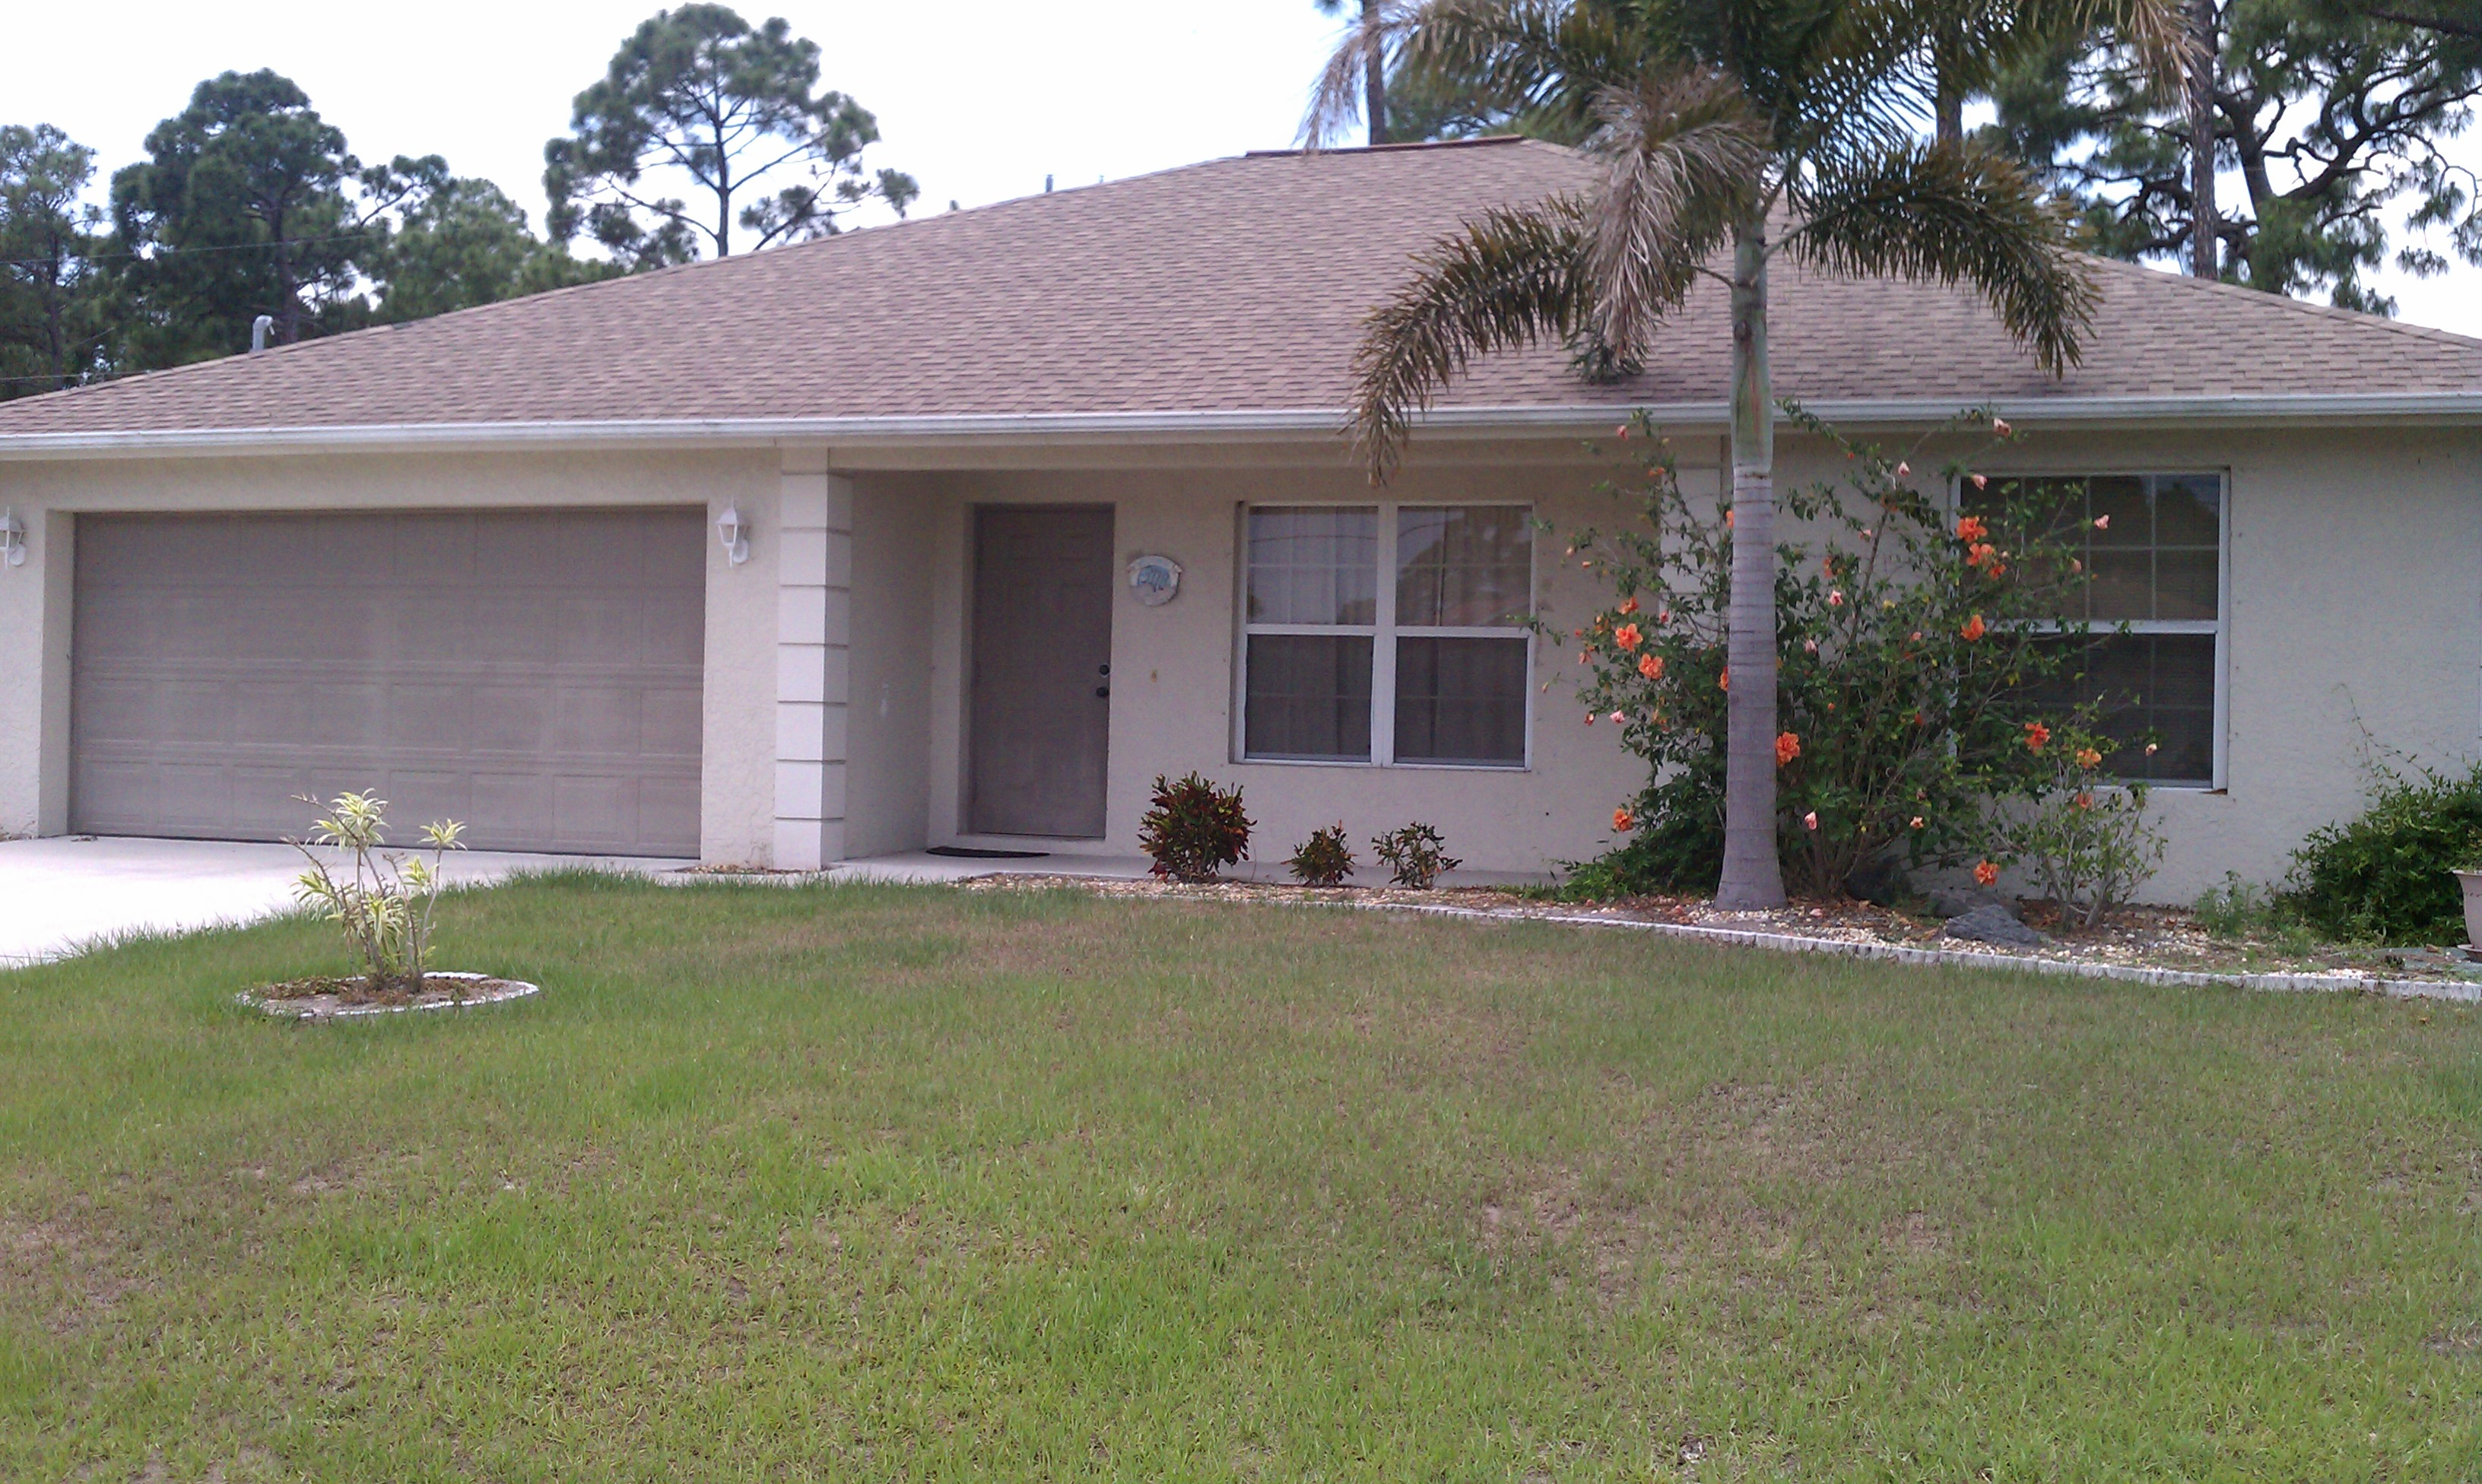 Home for sale in the Gatlin Rosser area of Port St Lucie